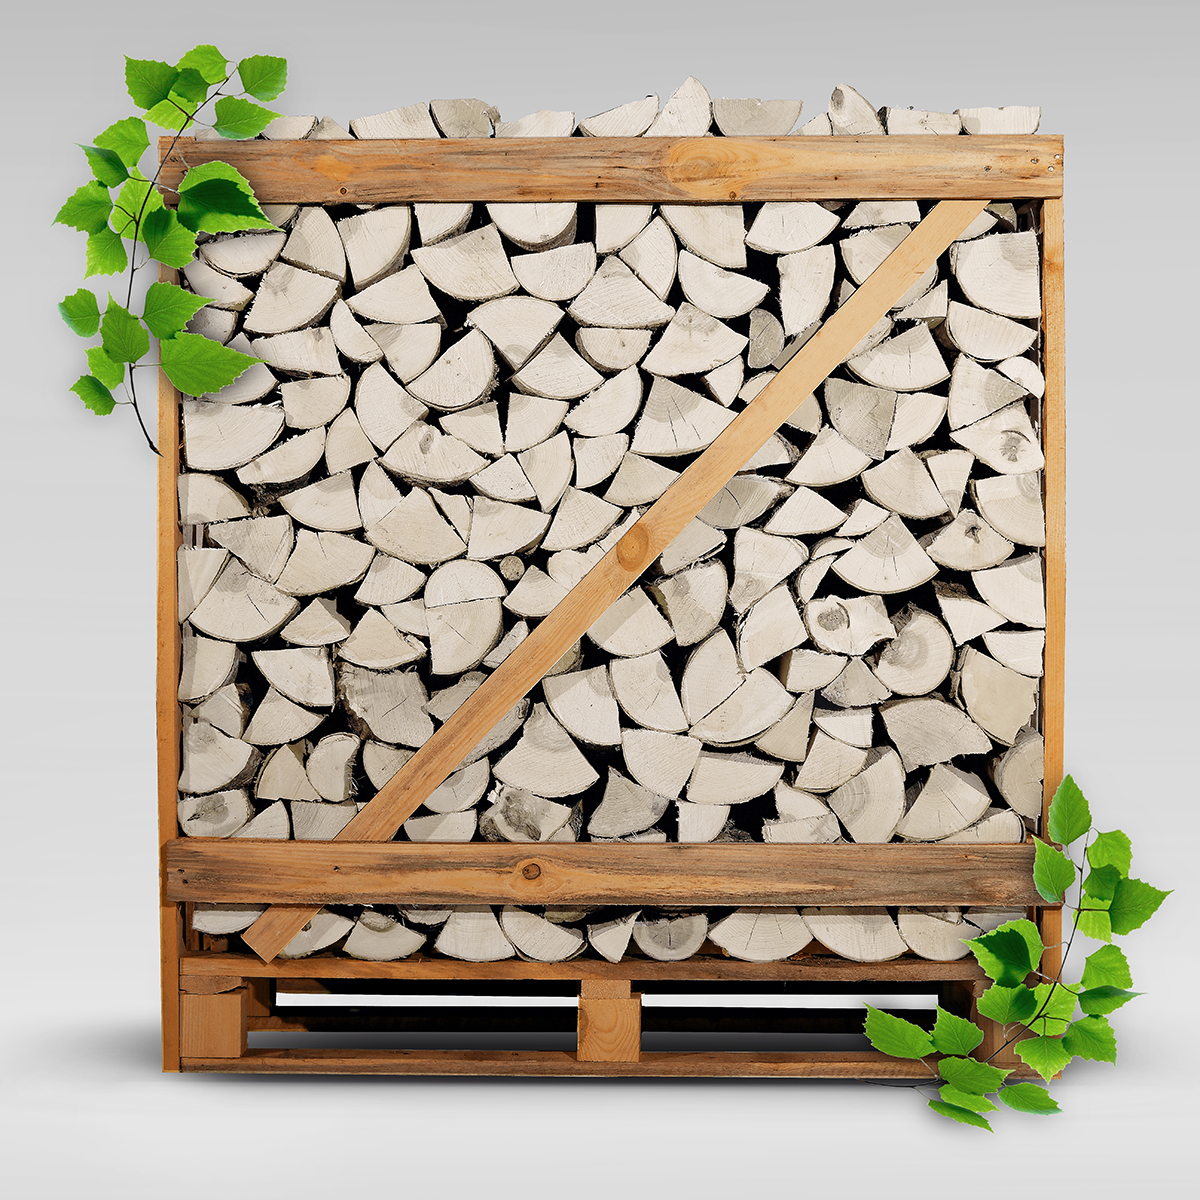 Kiln Dried Birch Firewood